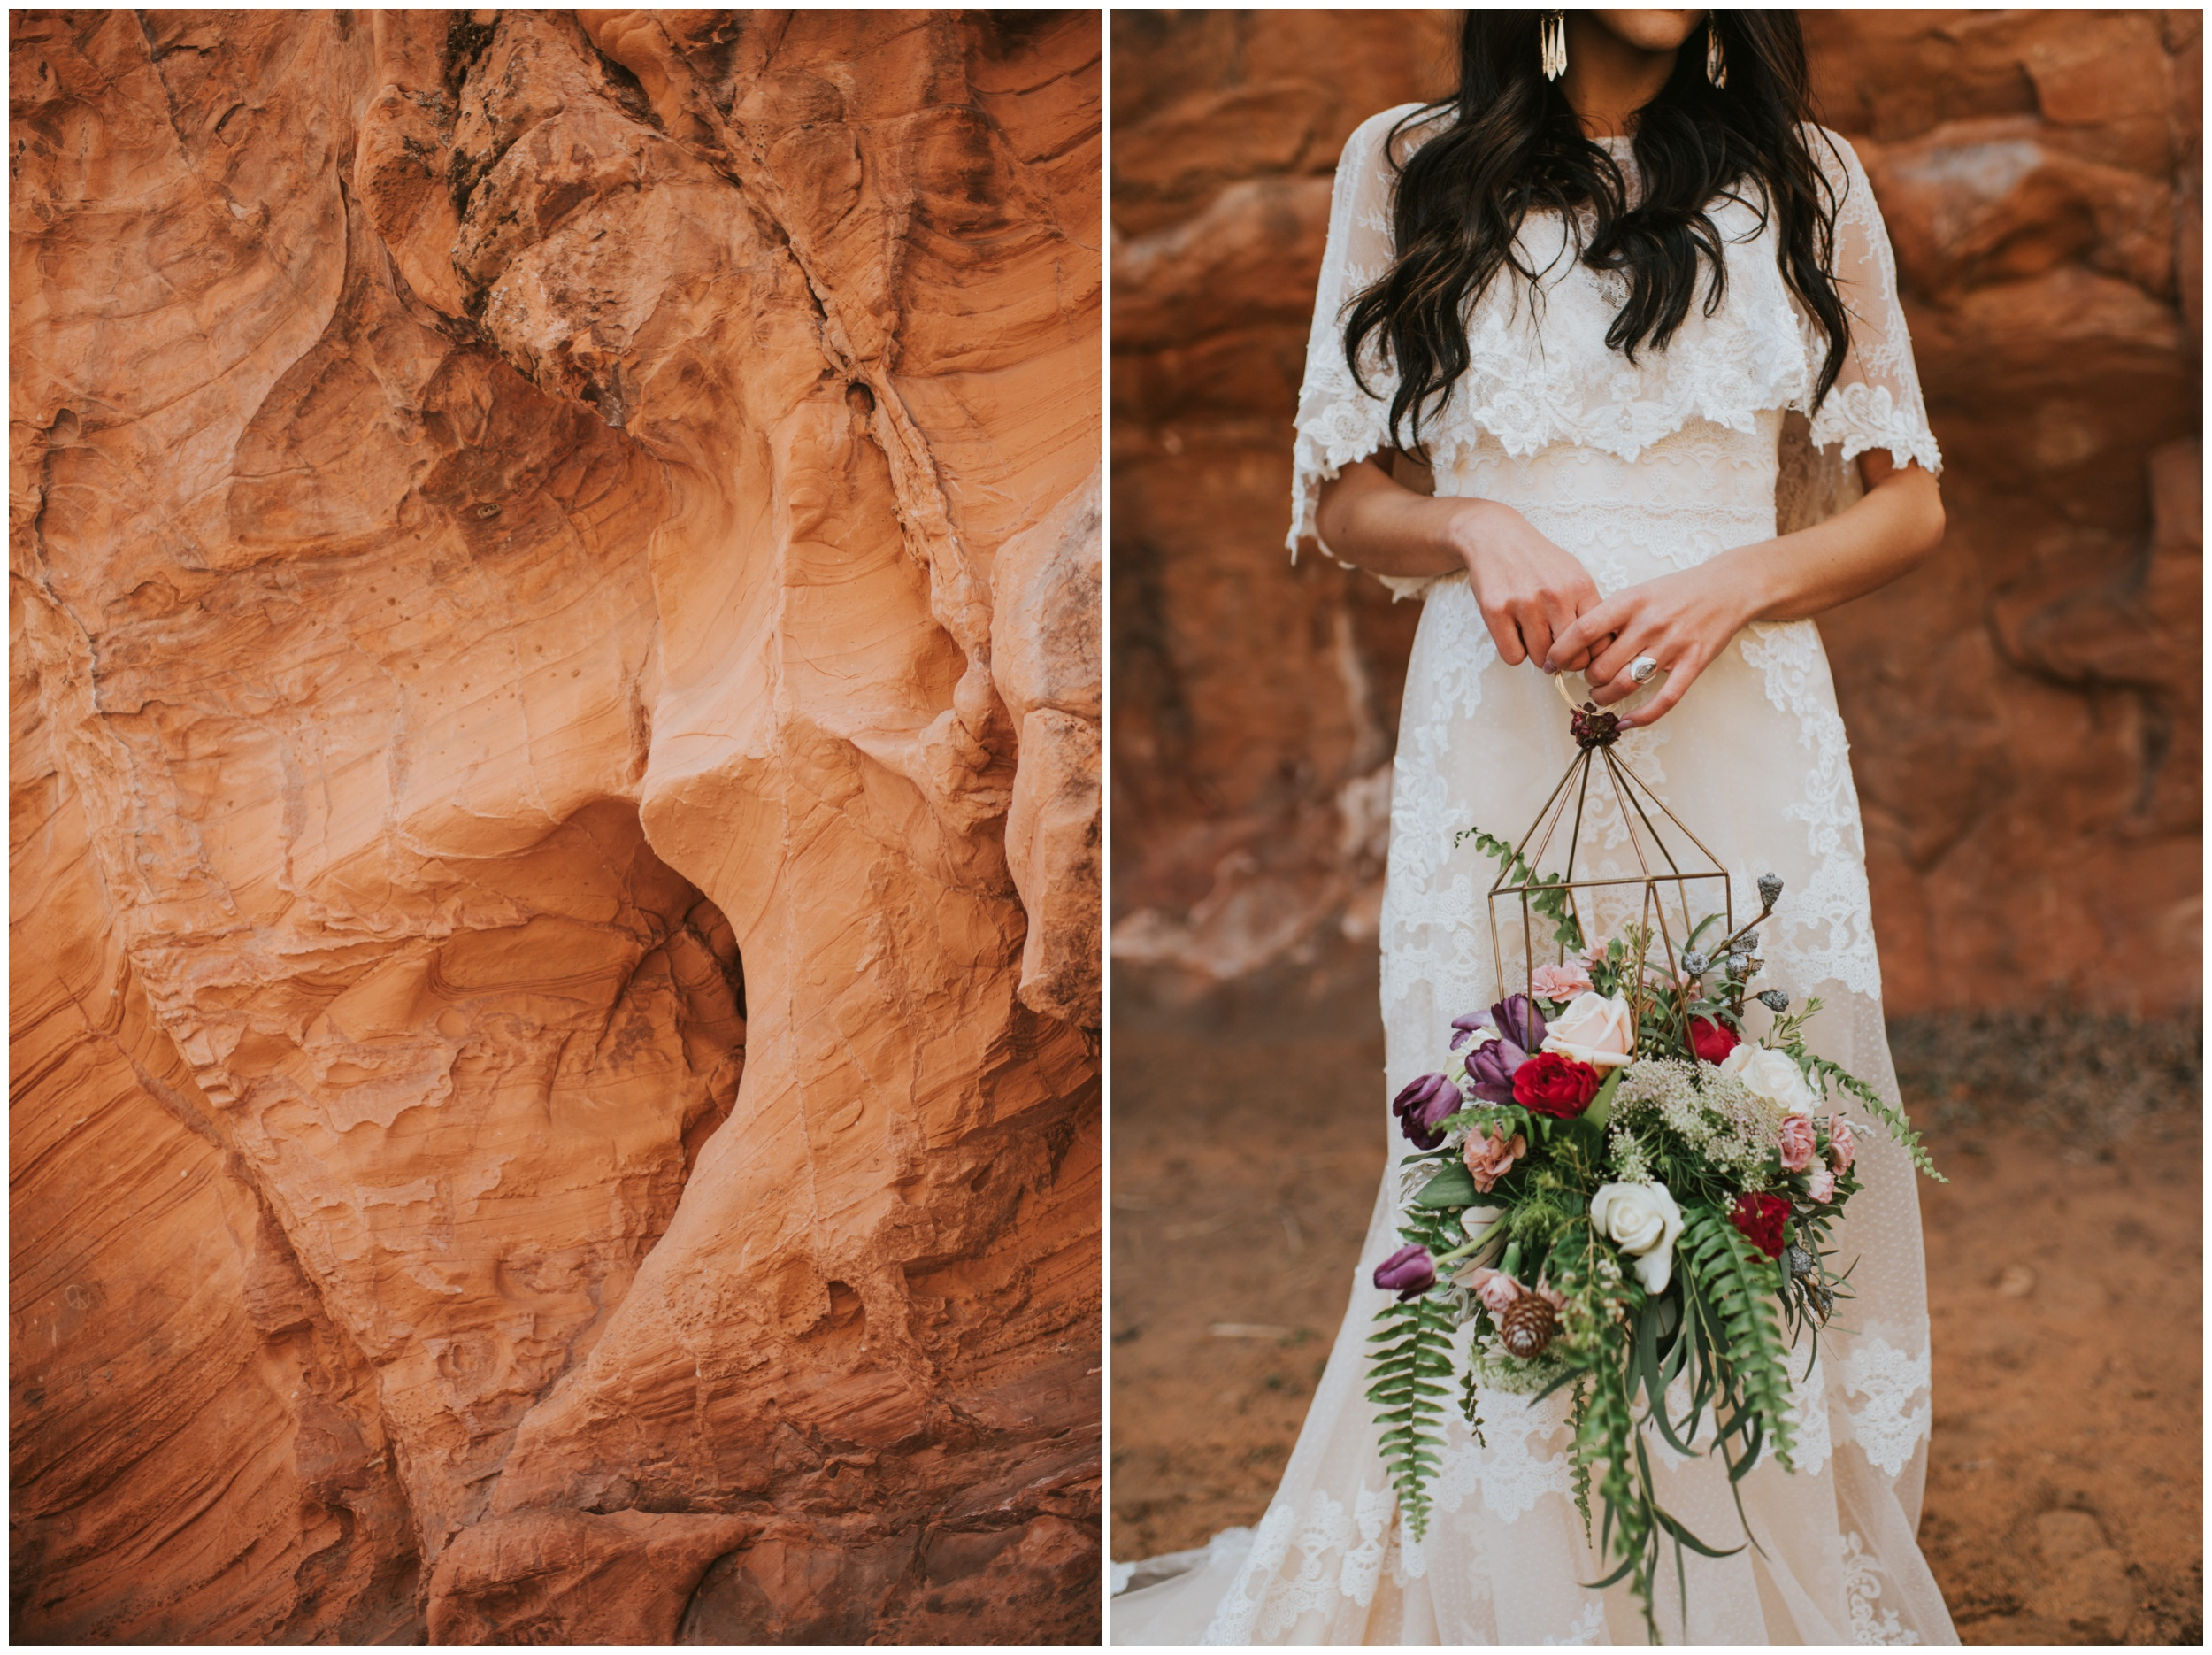 redrockutah-idahophotographer-utahphotographer-wedding-1.jpg